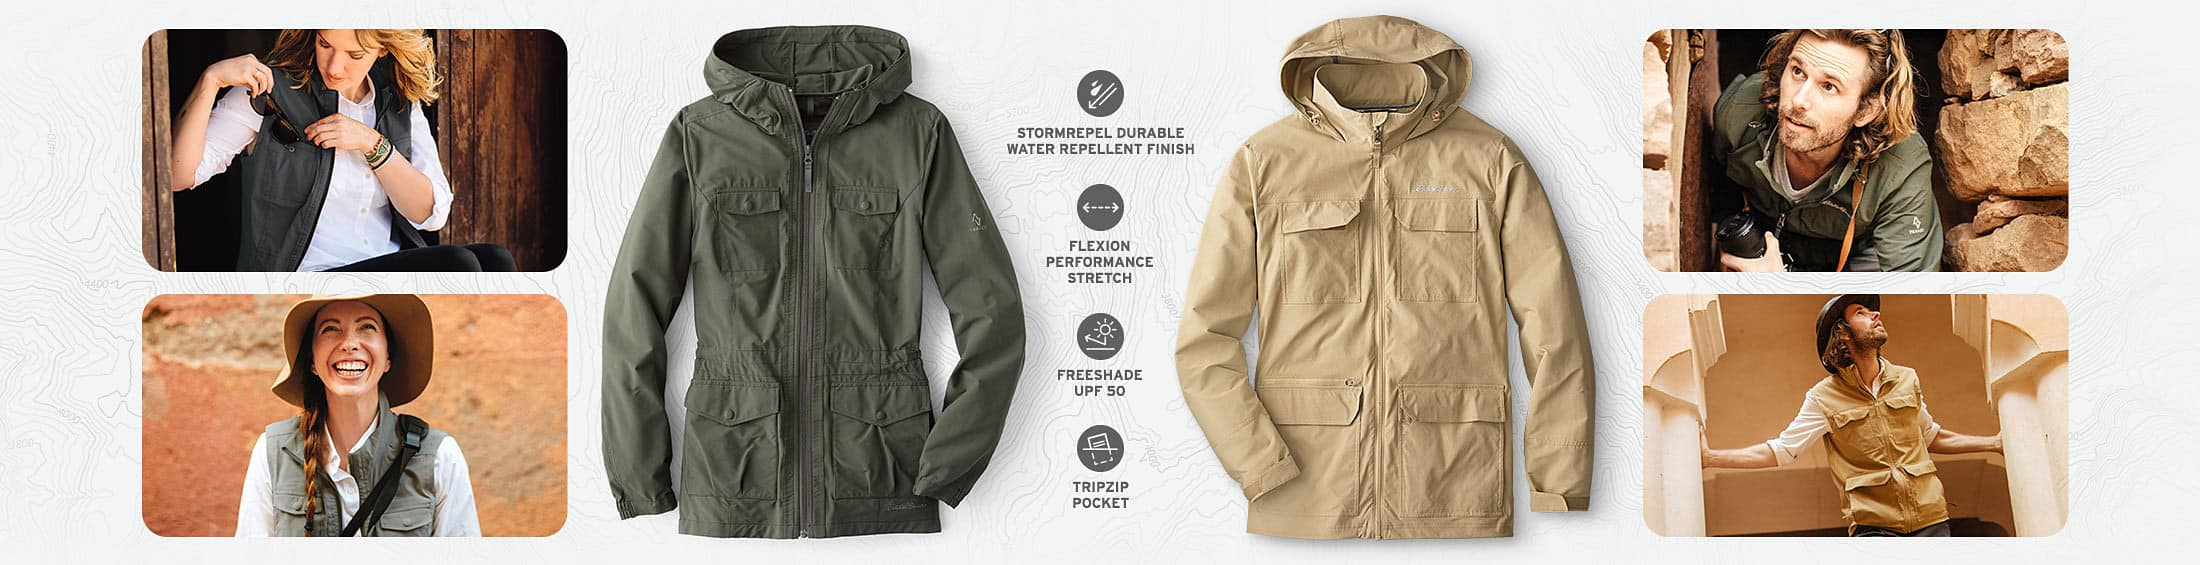 Check your email for Eddie Bauer $10 Rewards Certificate